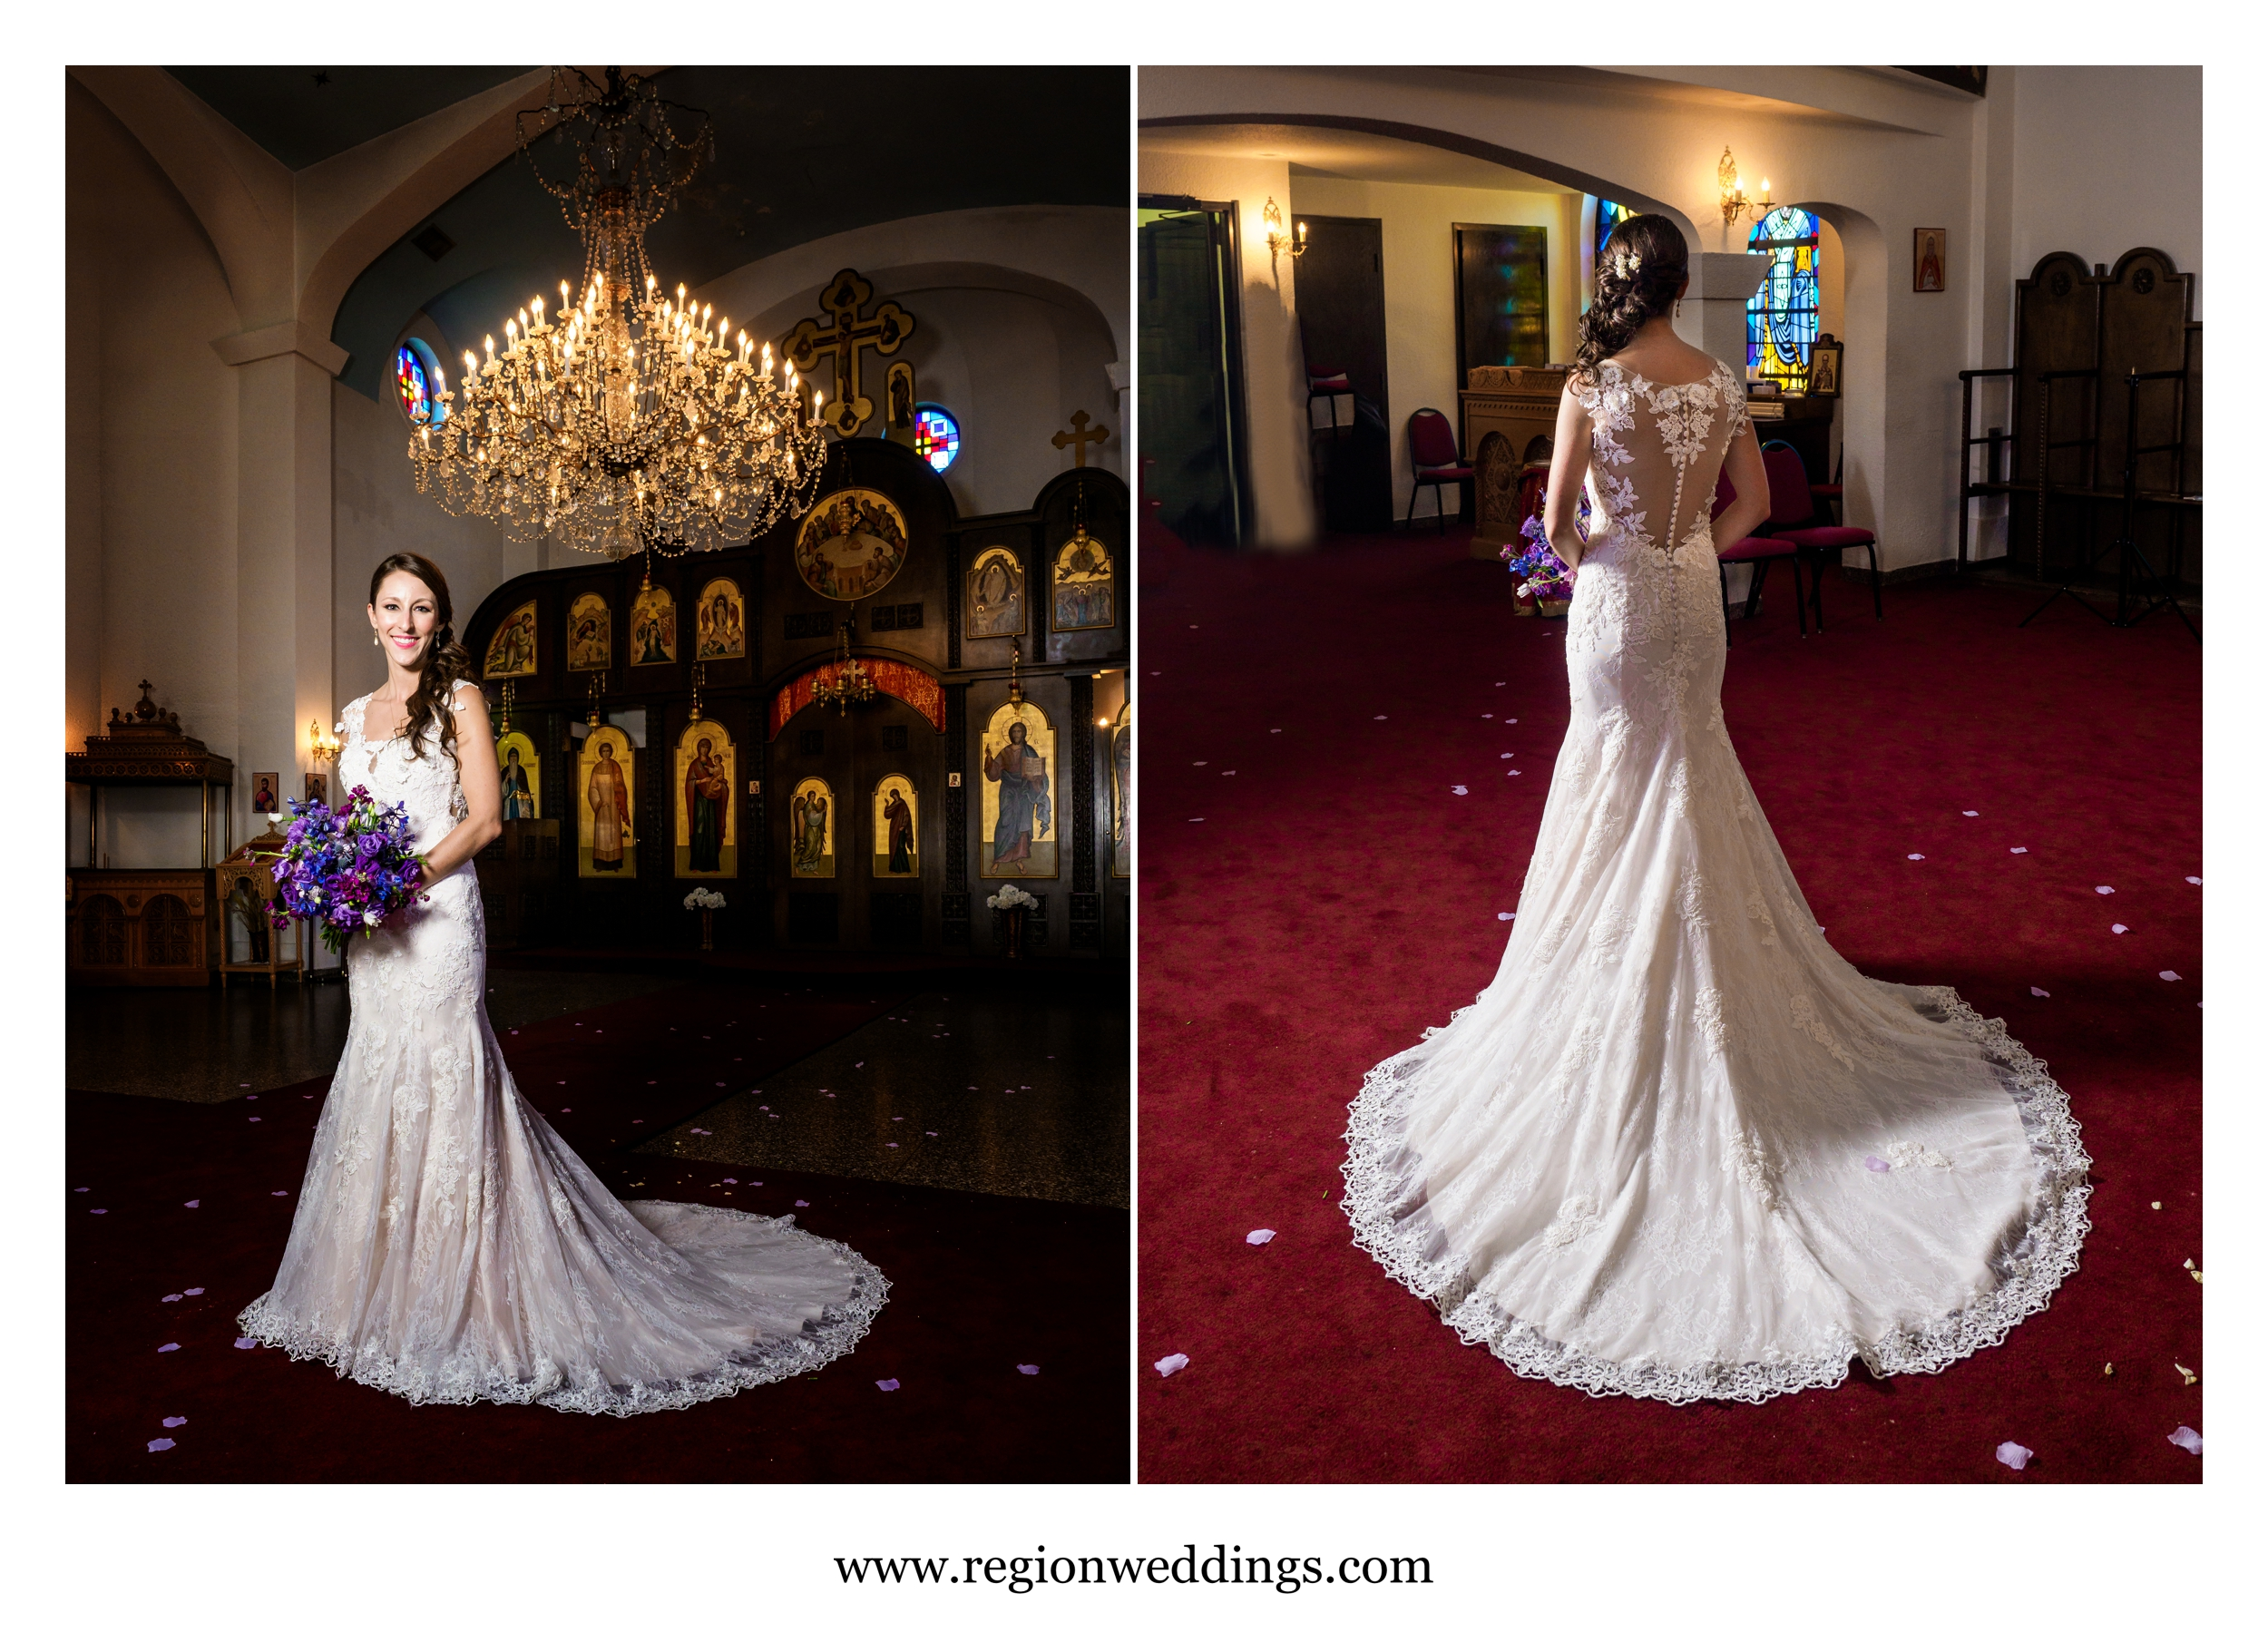 The bride shows off her dress at St. Simeon in Chicago.